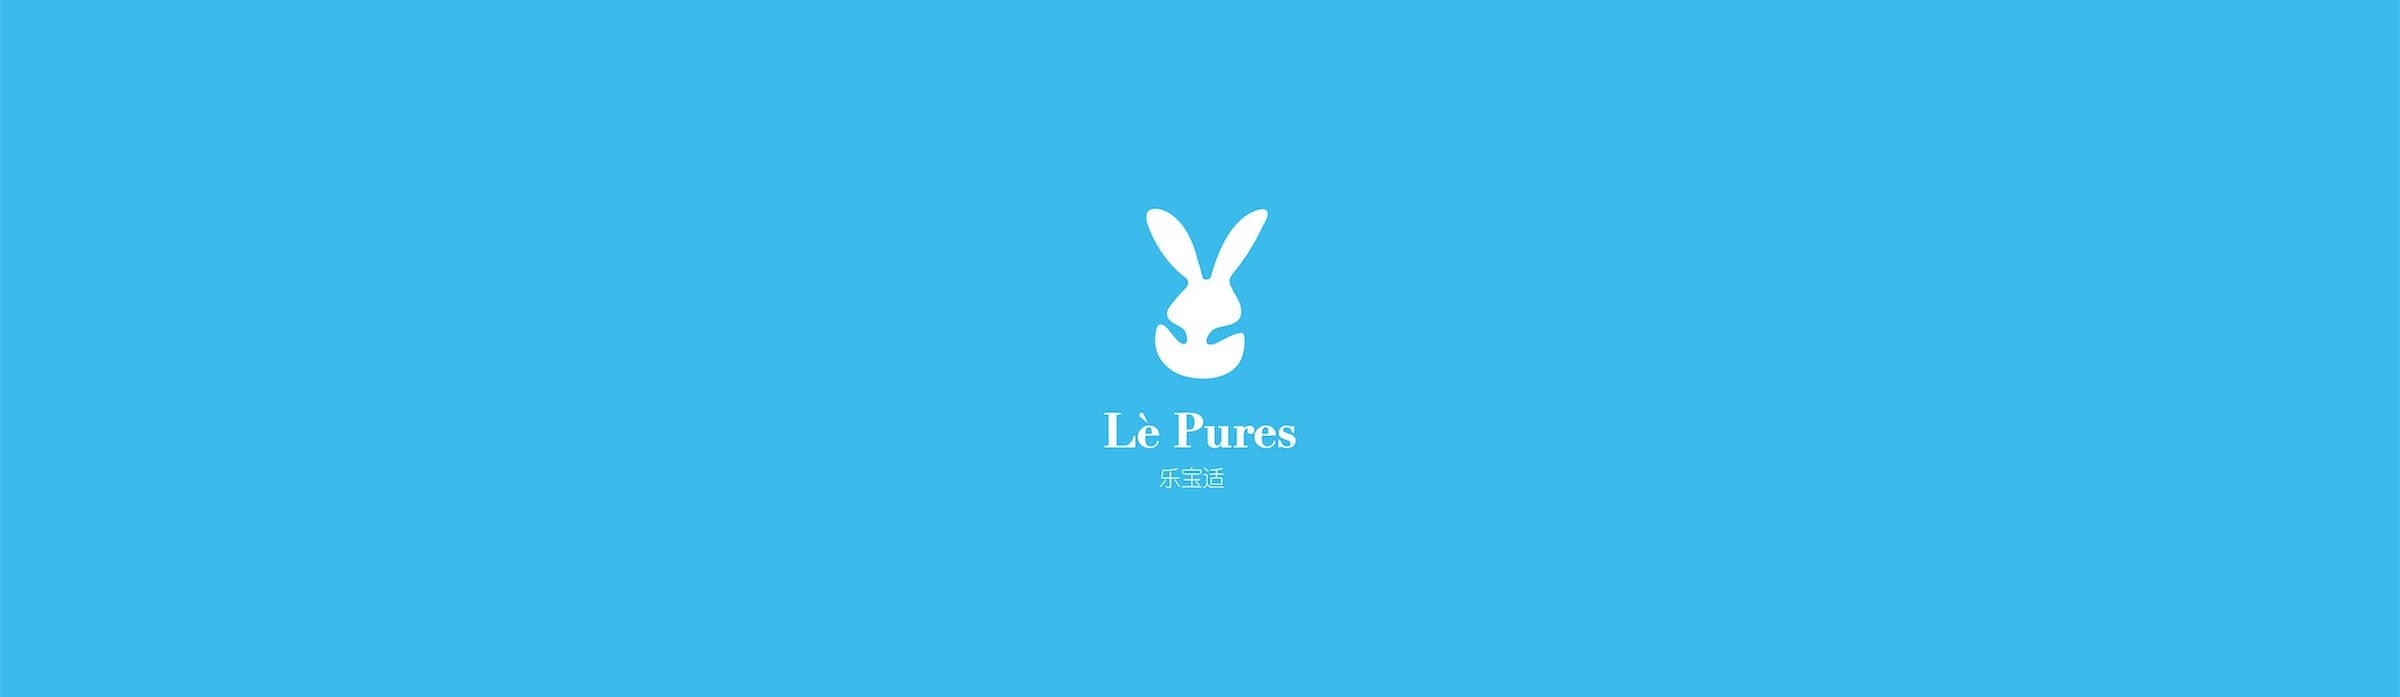 Le pures logo with background color